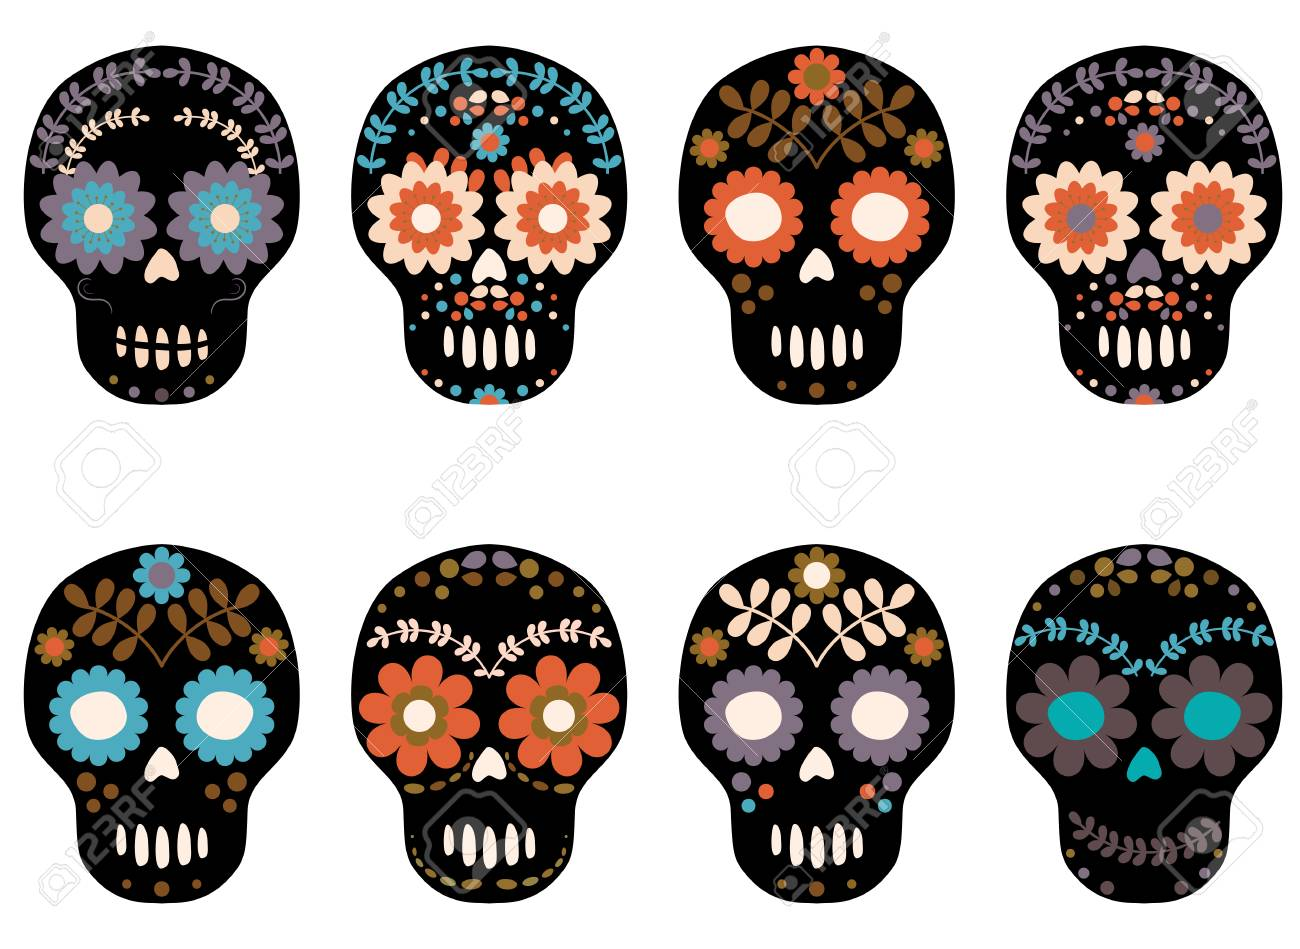 Stylish Vector Sugar Skull With Floral Patterns For Halloween Royalty Free Cliparts Vectors And Stock Illustration Image 87041659